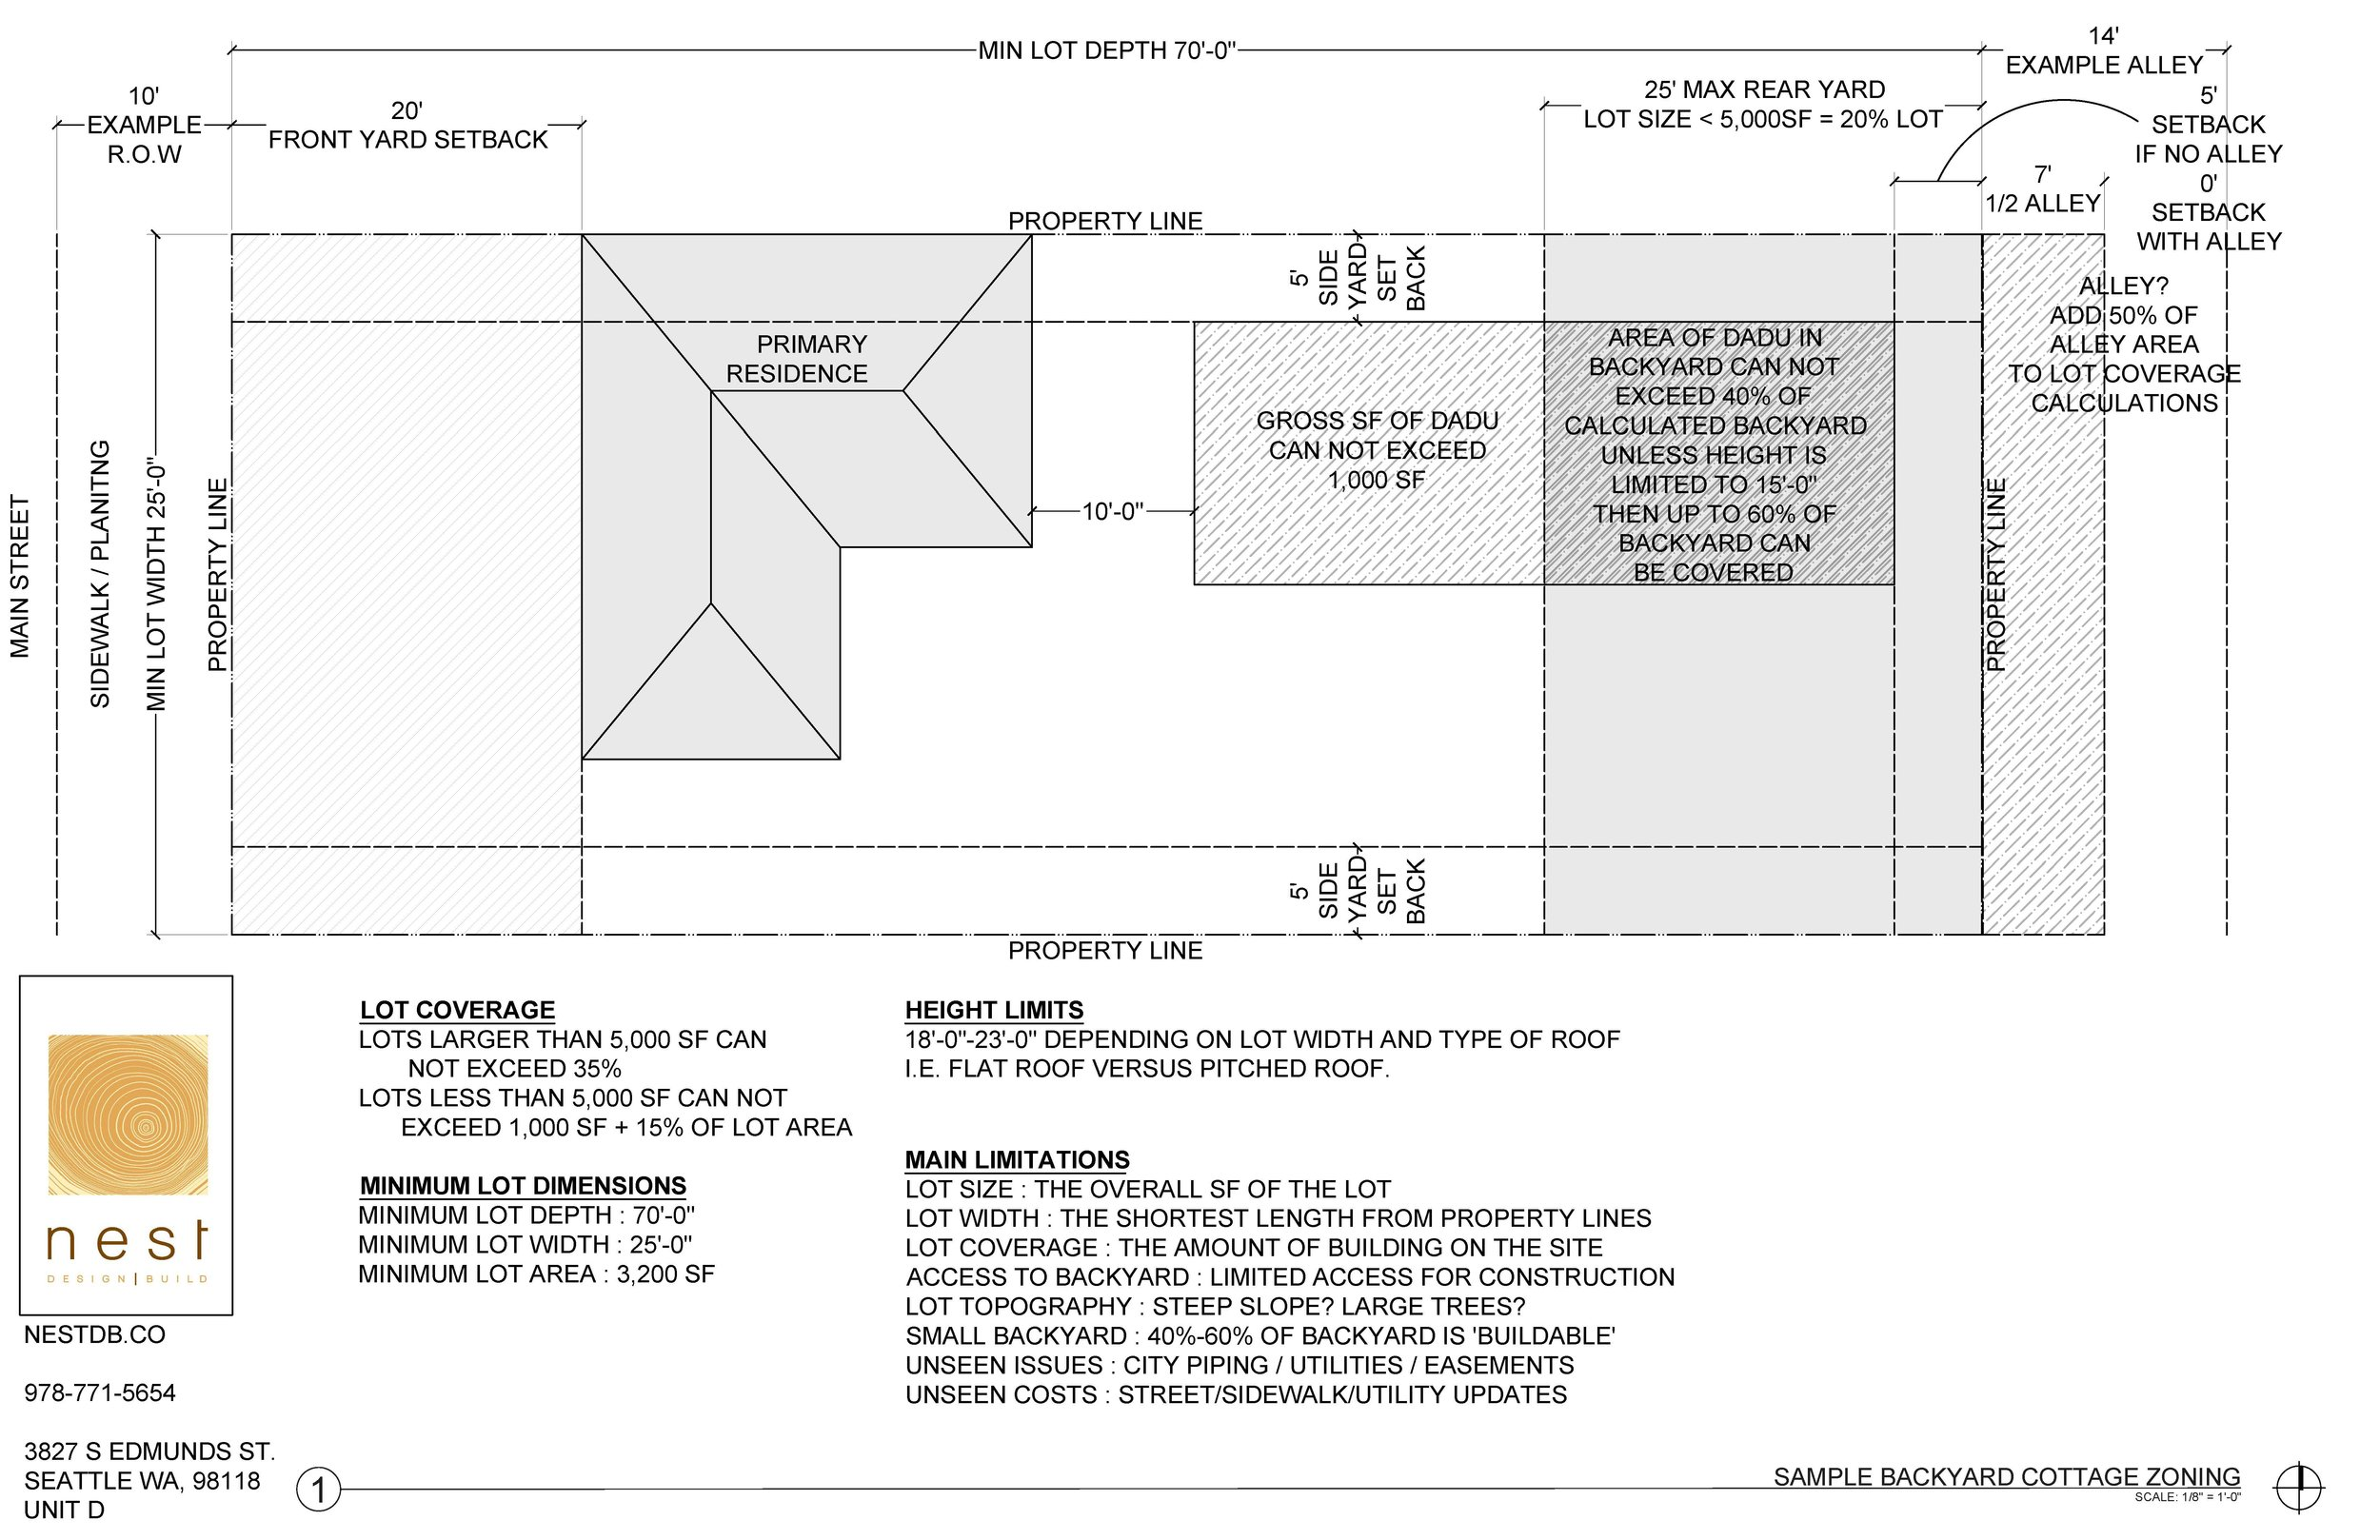 backyard cottage zoning diagram NEW CODES-backyard cottage zoning.jpg